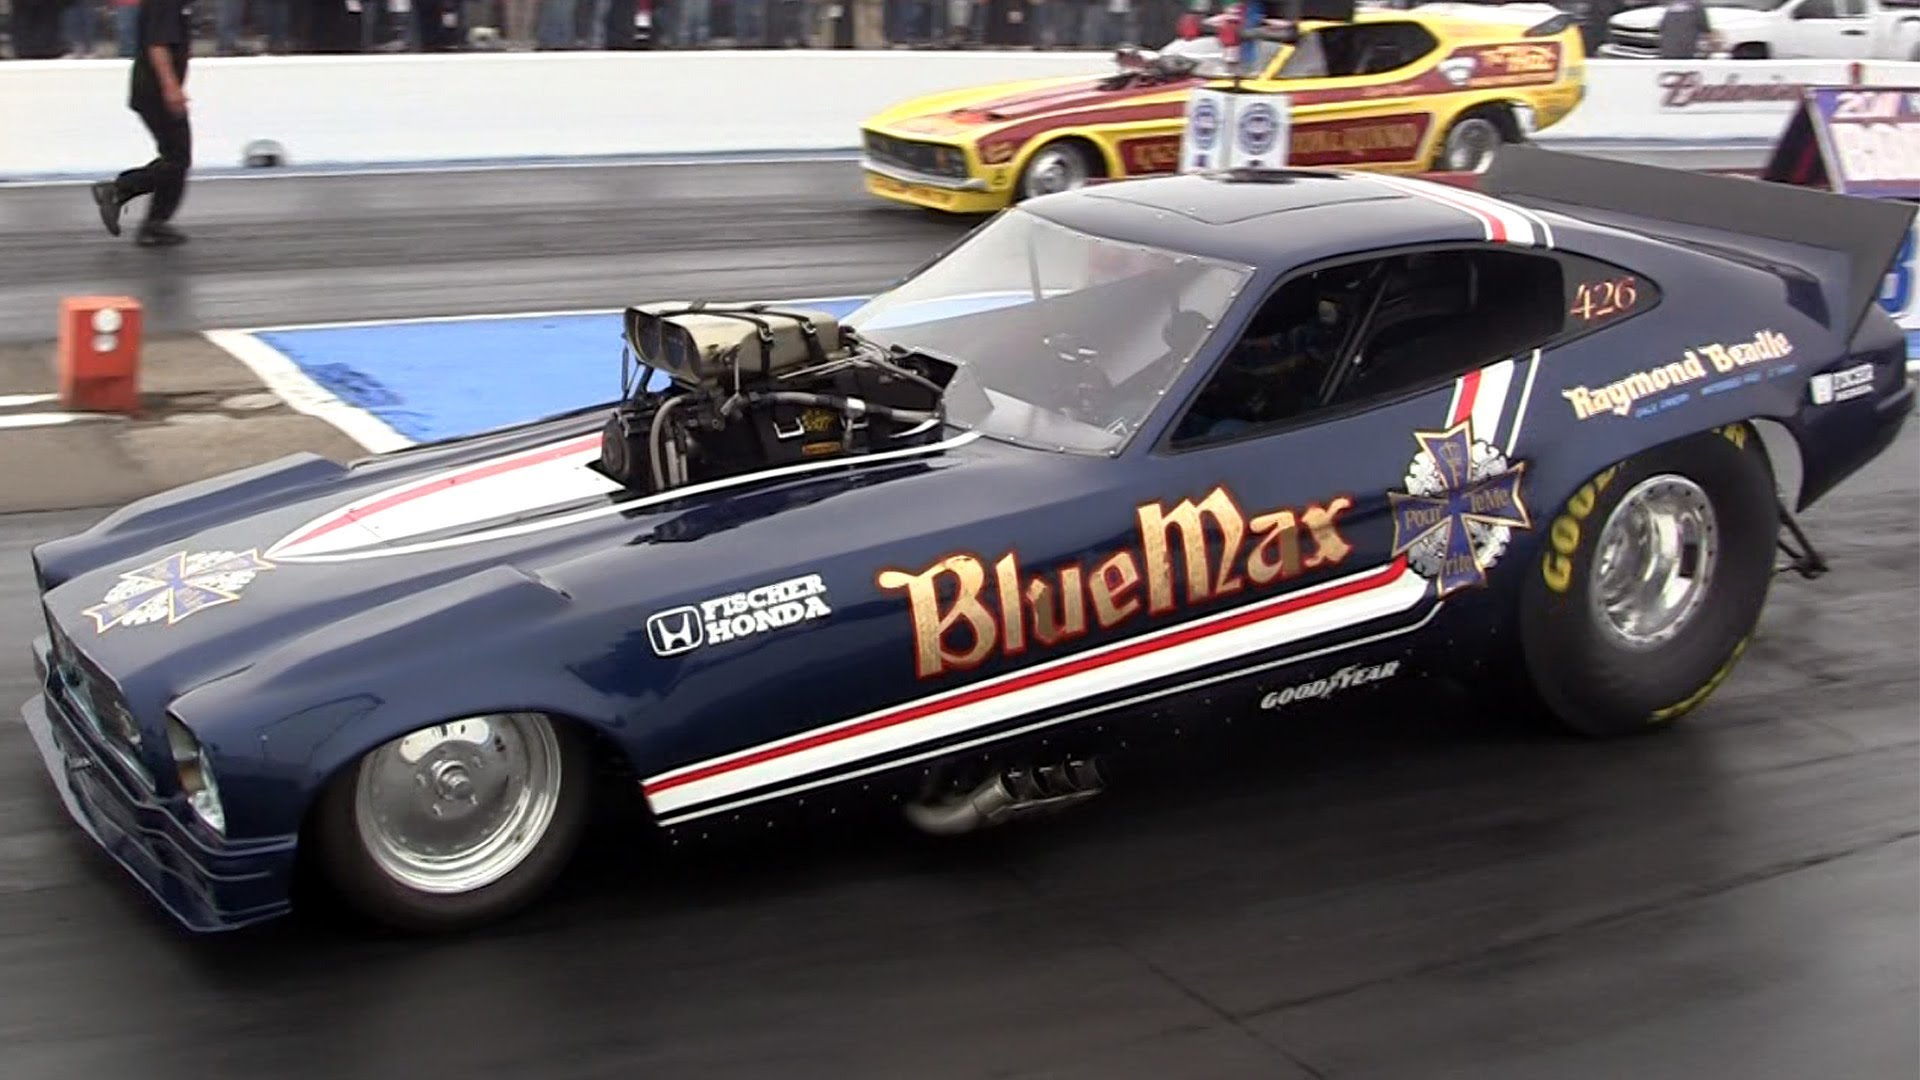 nhra drag racing race hot rod rods BLUE MAX ford mustang n wallpaper 1920x1080